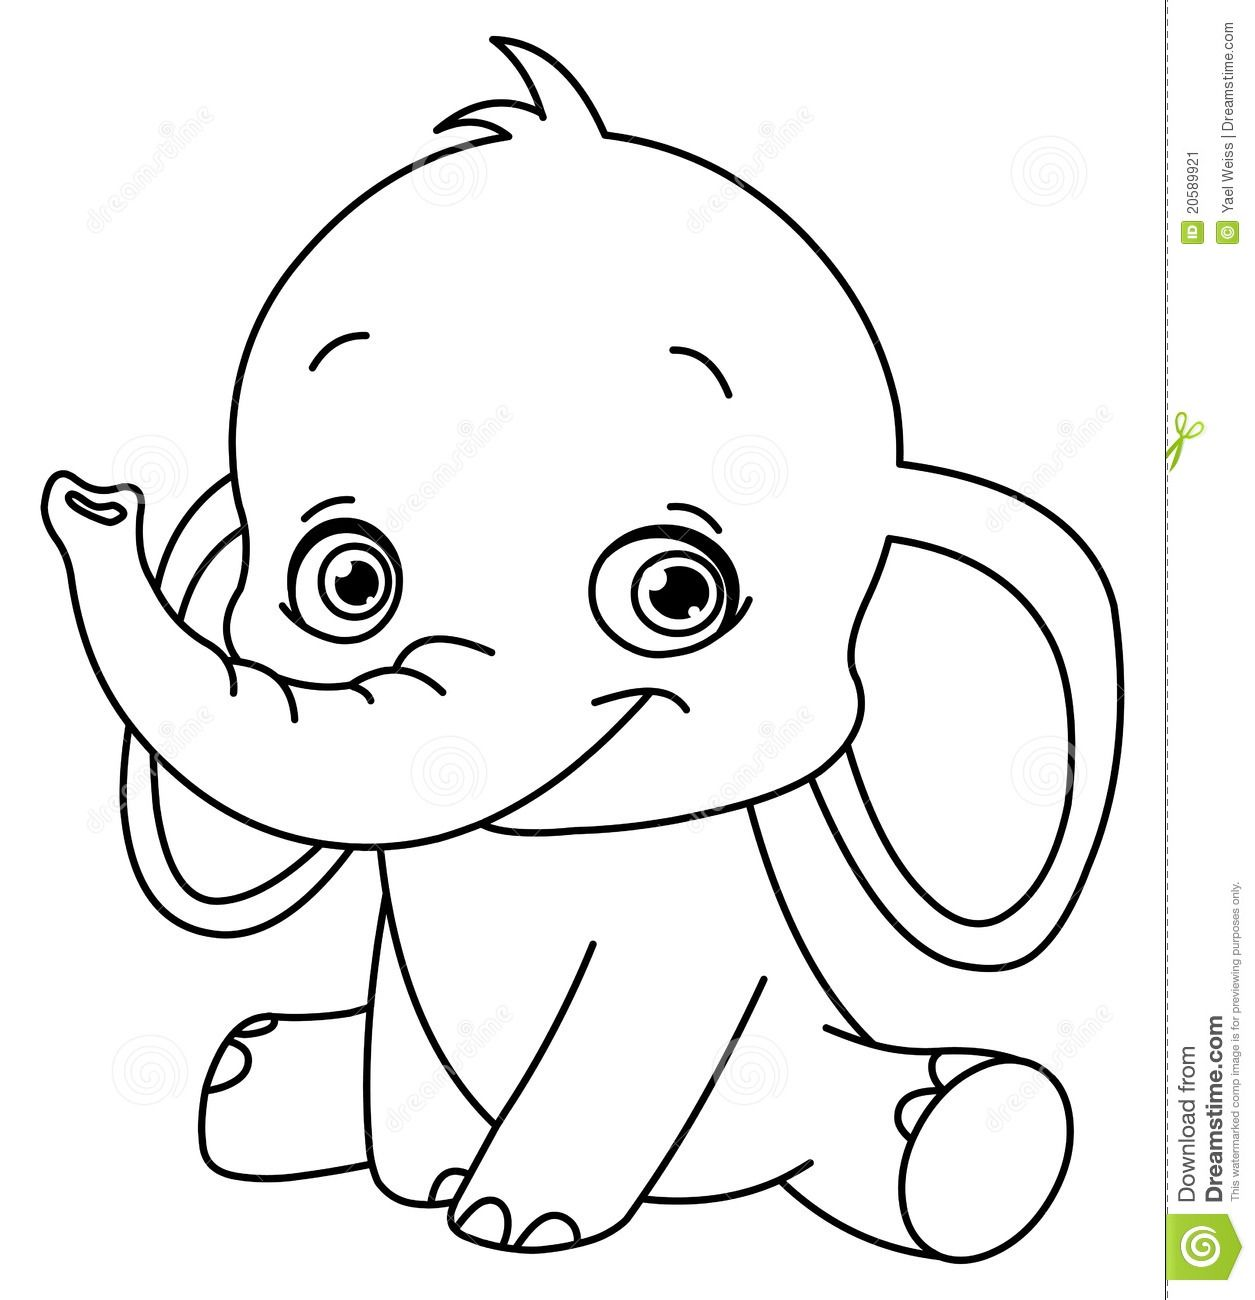 Elephant coloring pages free - Baby Elephant Coloring Pages To Download And Print For Free